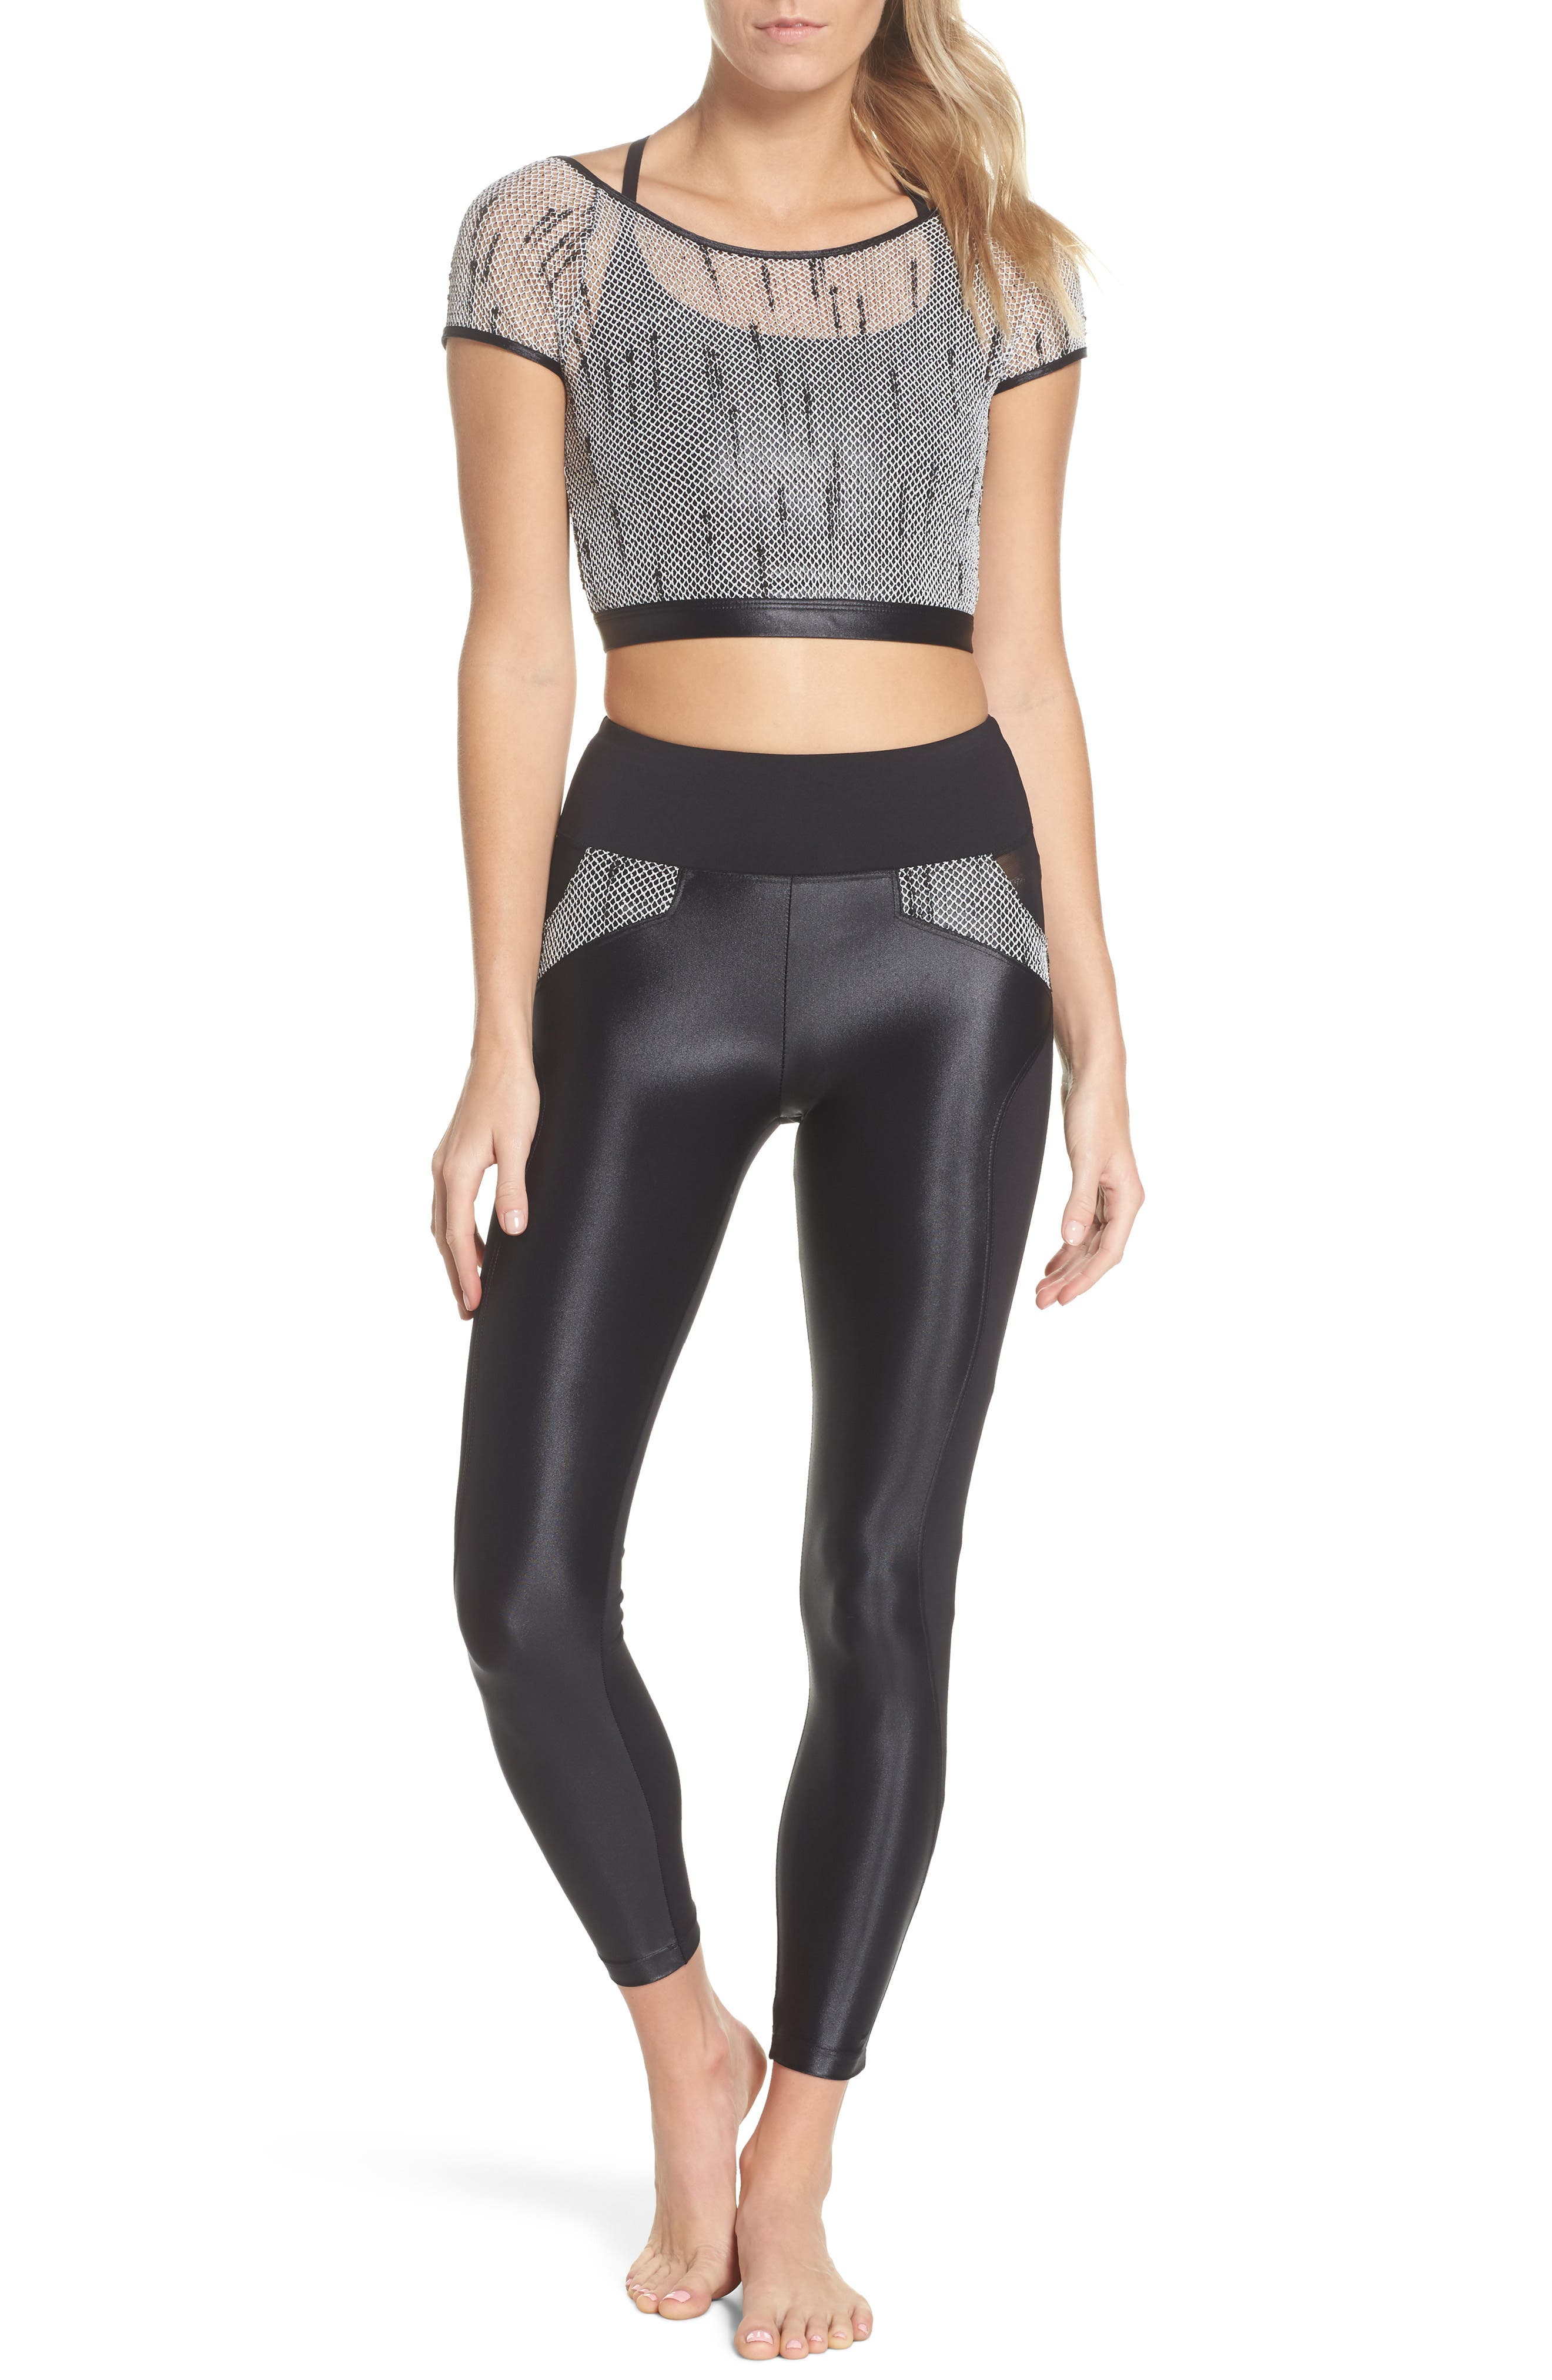 Waves High Waist Leggings,                             Alternate thumbnail 8, color,                             001